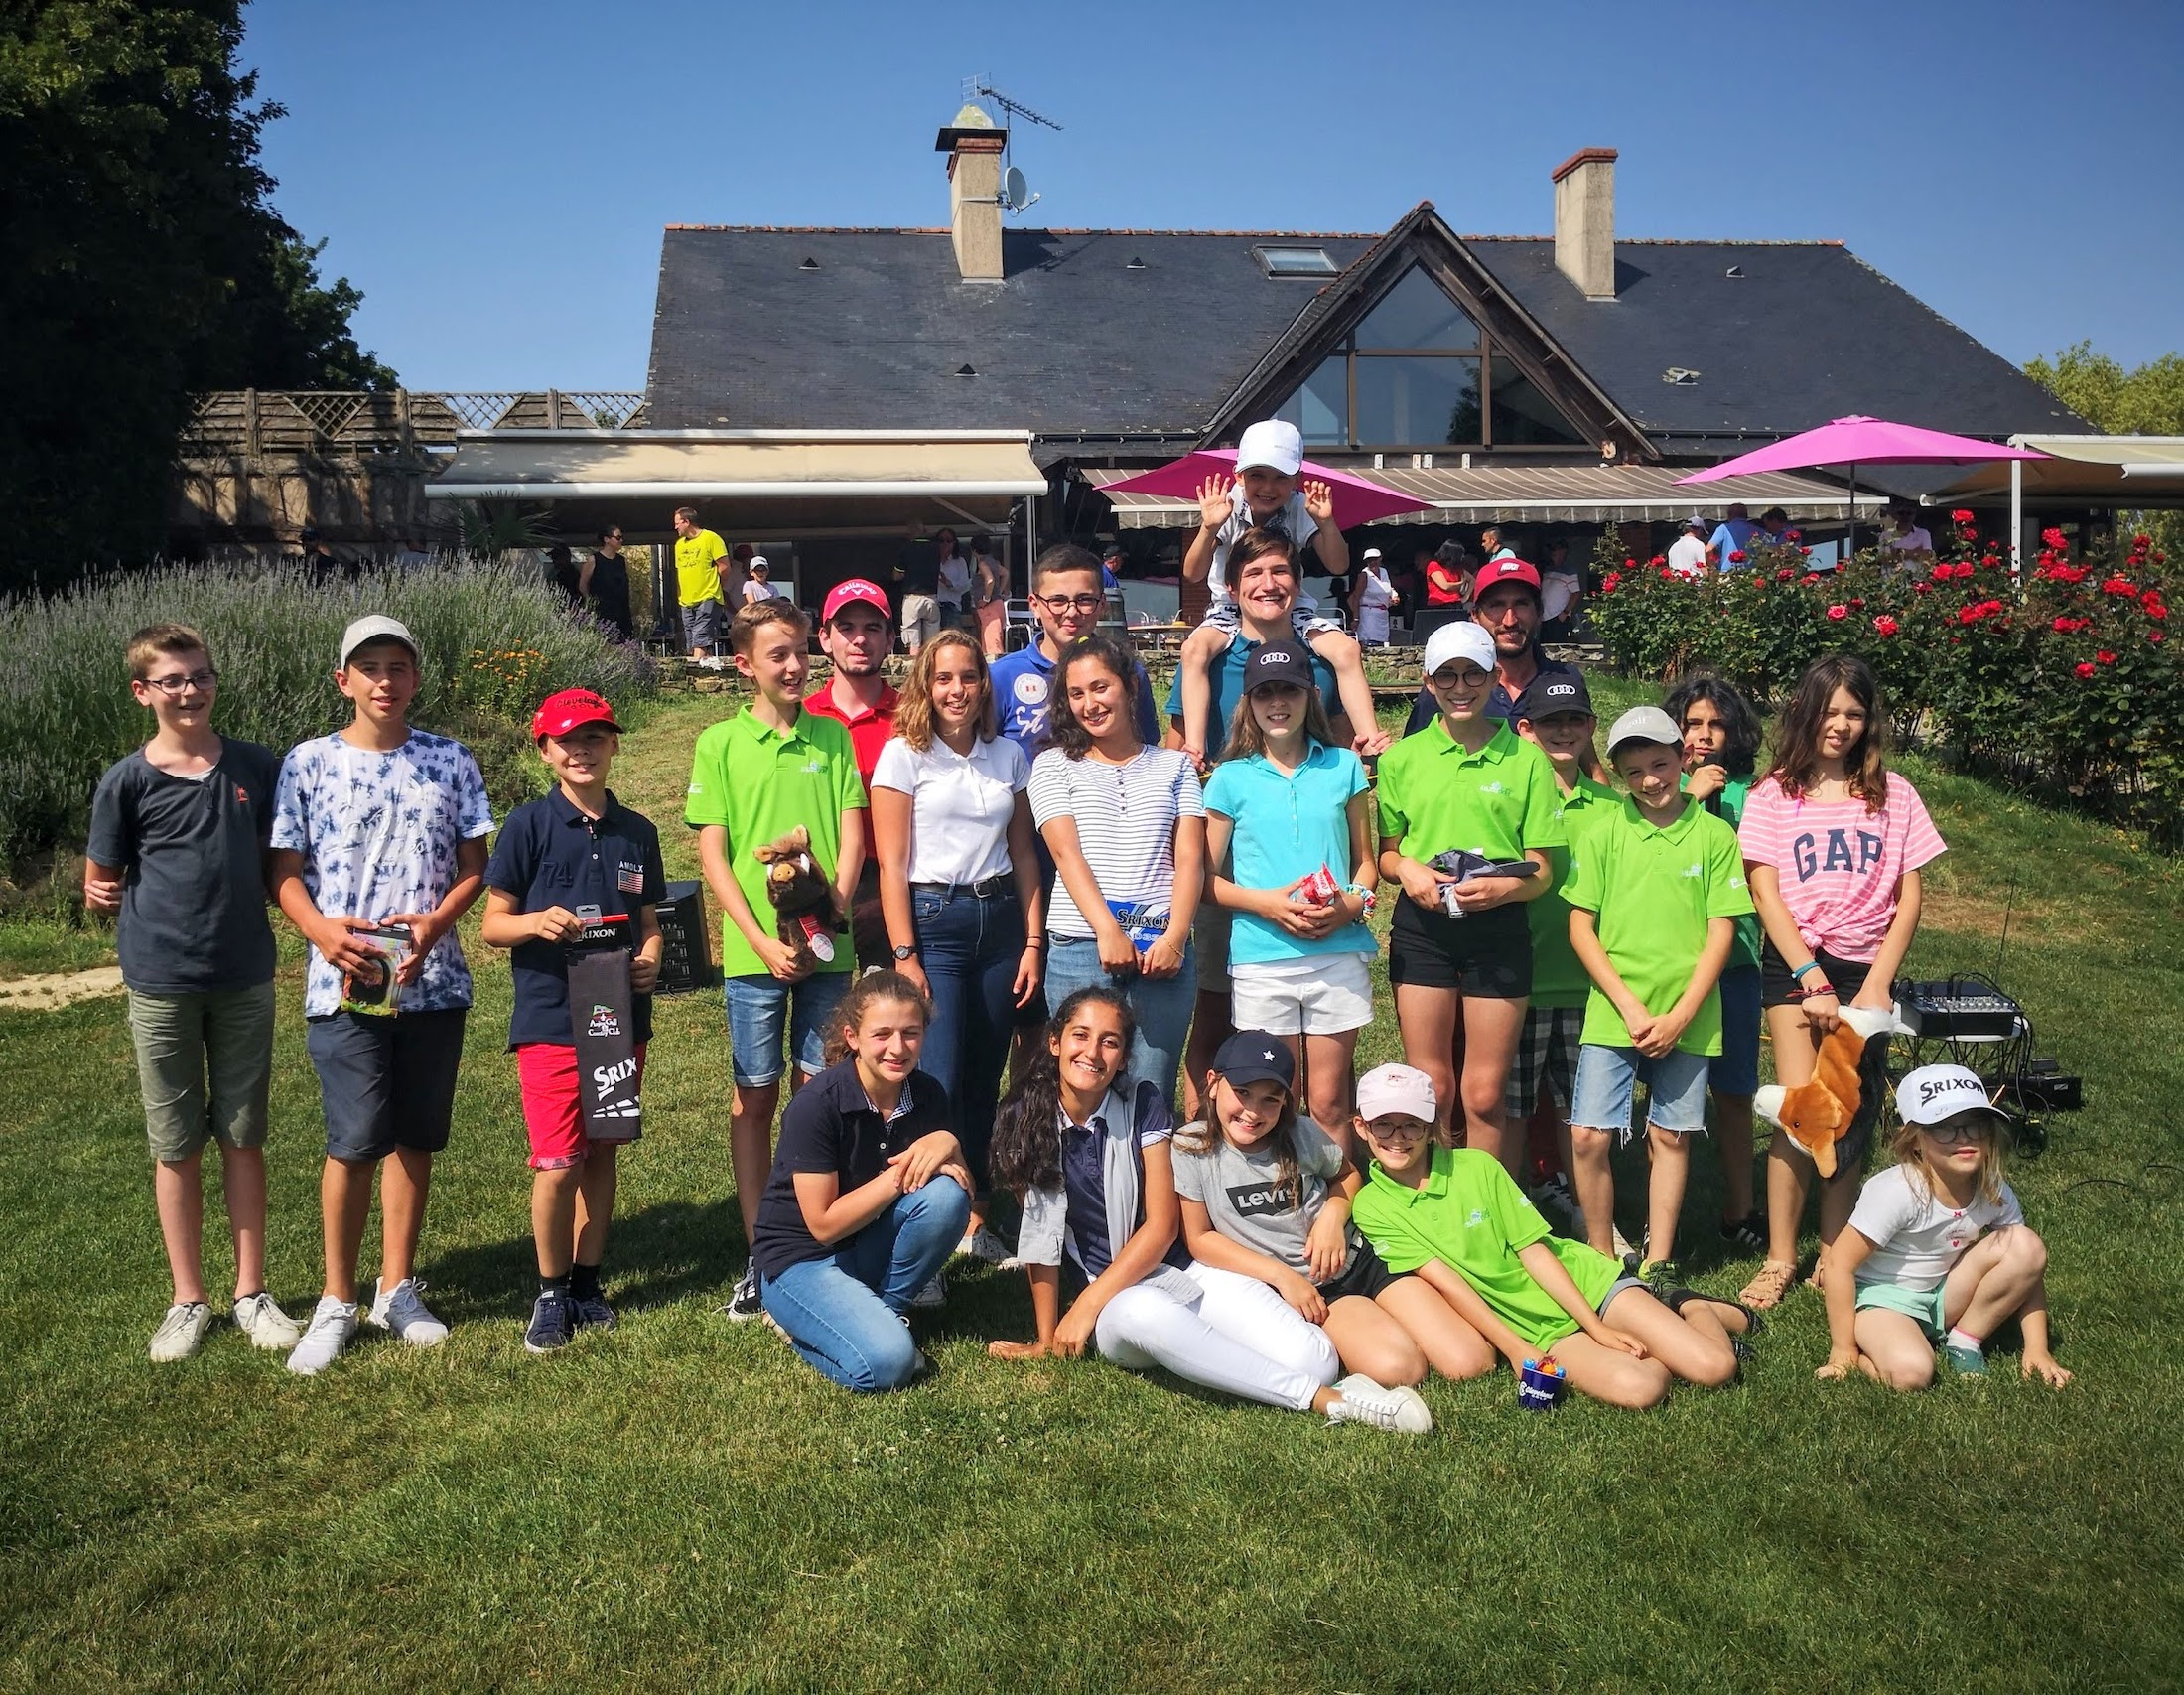 Ecole de golf rentree 2019 Anjou Golf .jpg